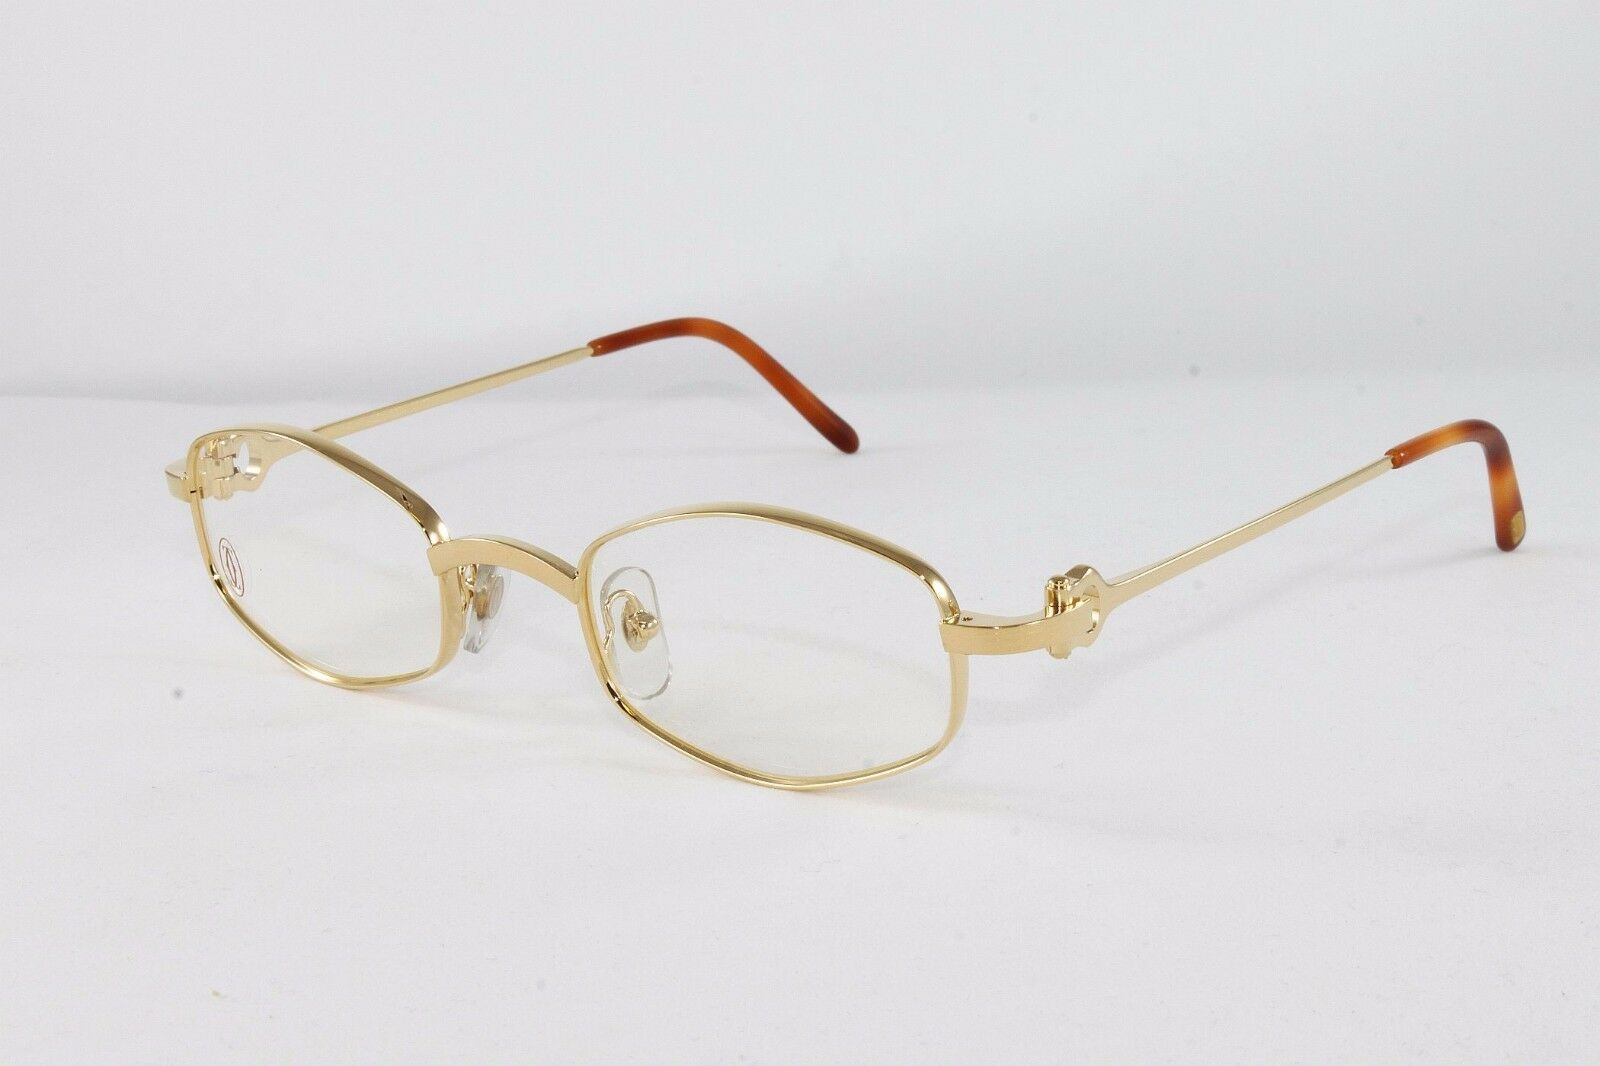 Cartier OCTAGON Gold Eyeglasses T8100426 Frames Authentic France 48 ...